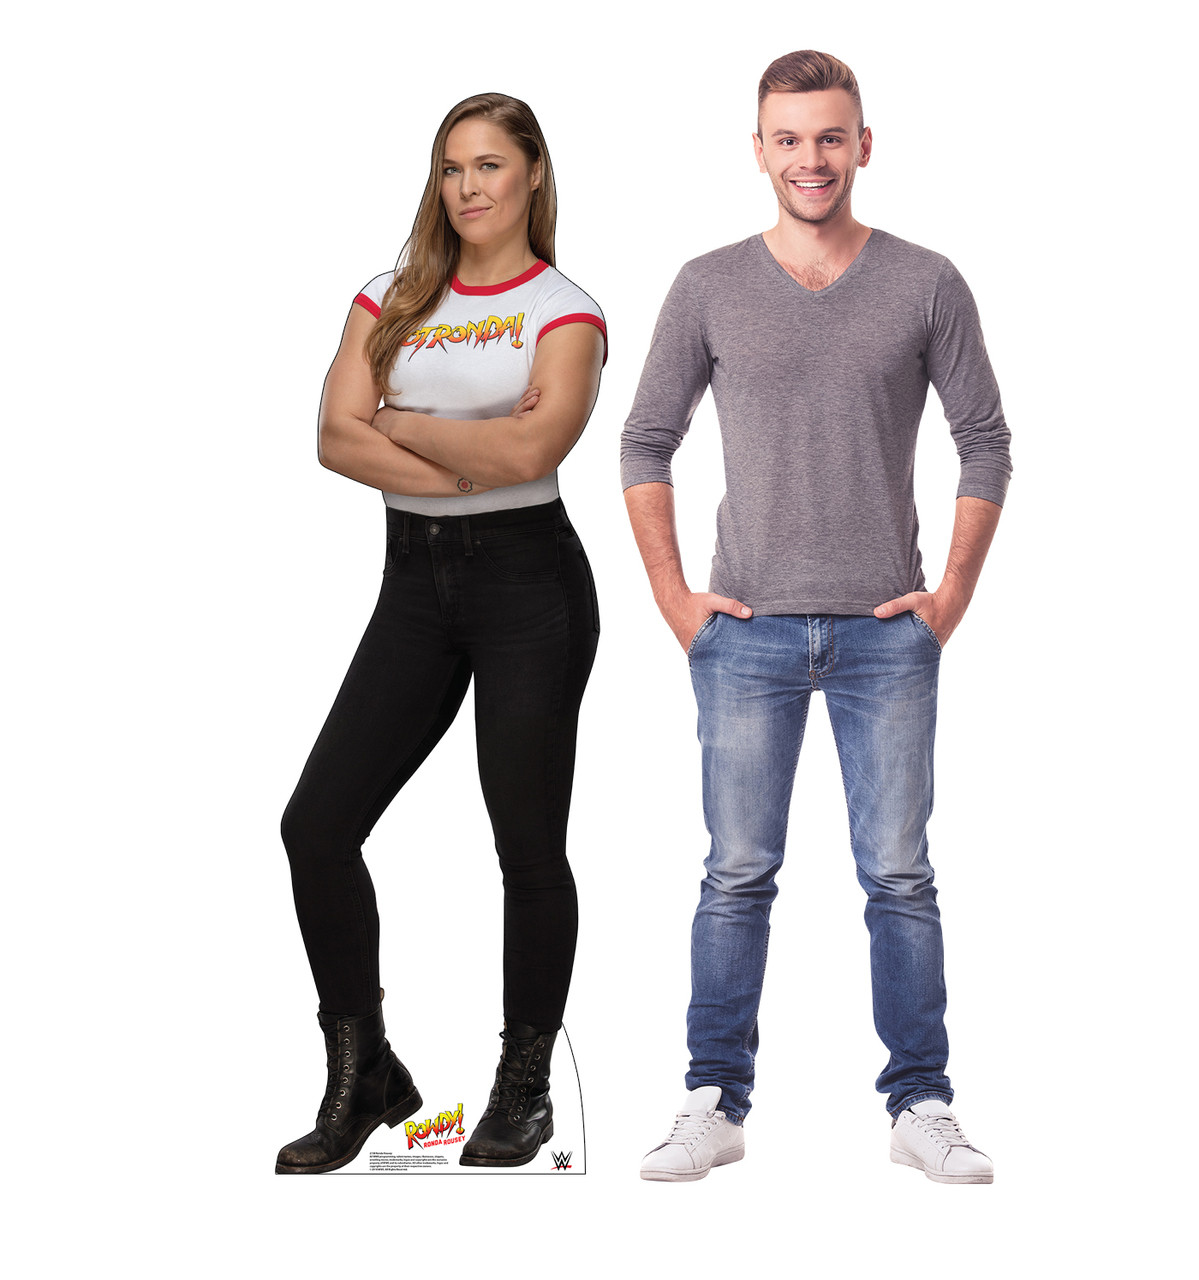 Ronda Rousey Life-size cardboard standee with model.